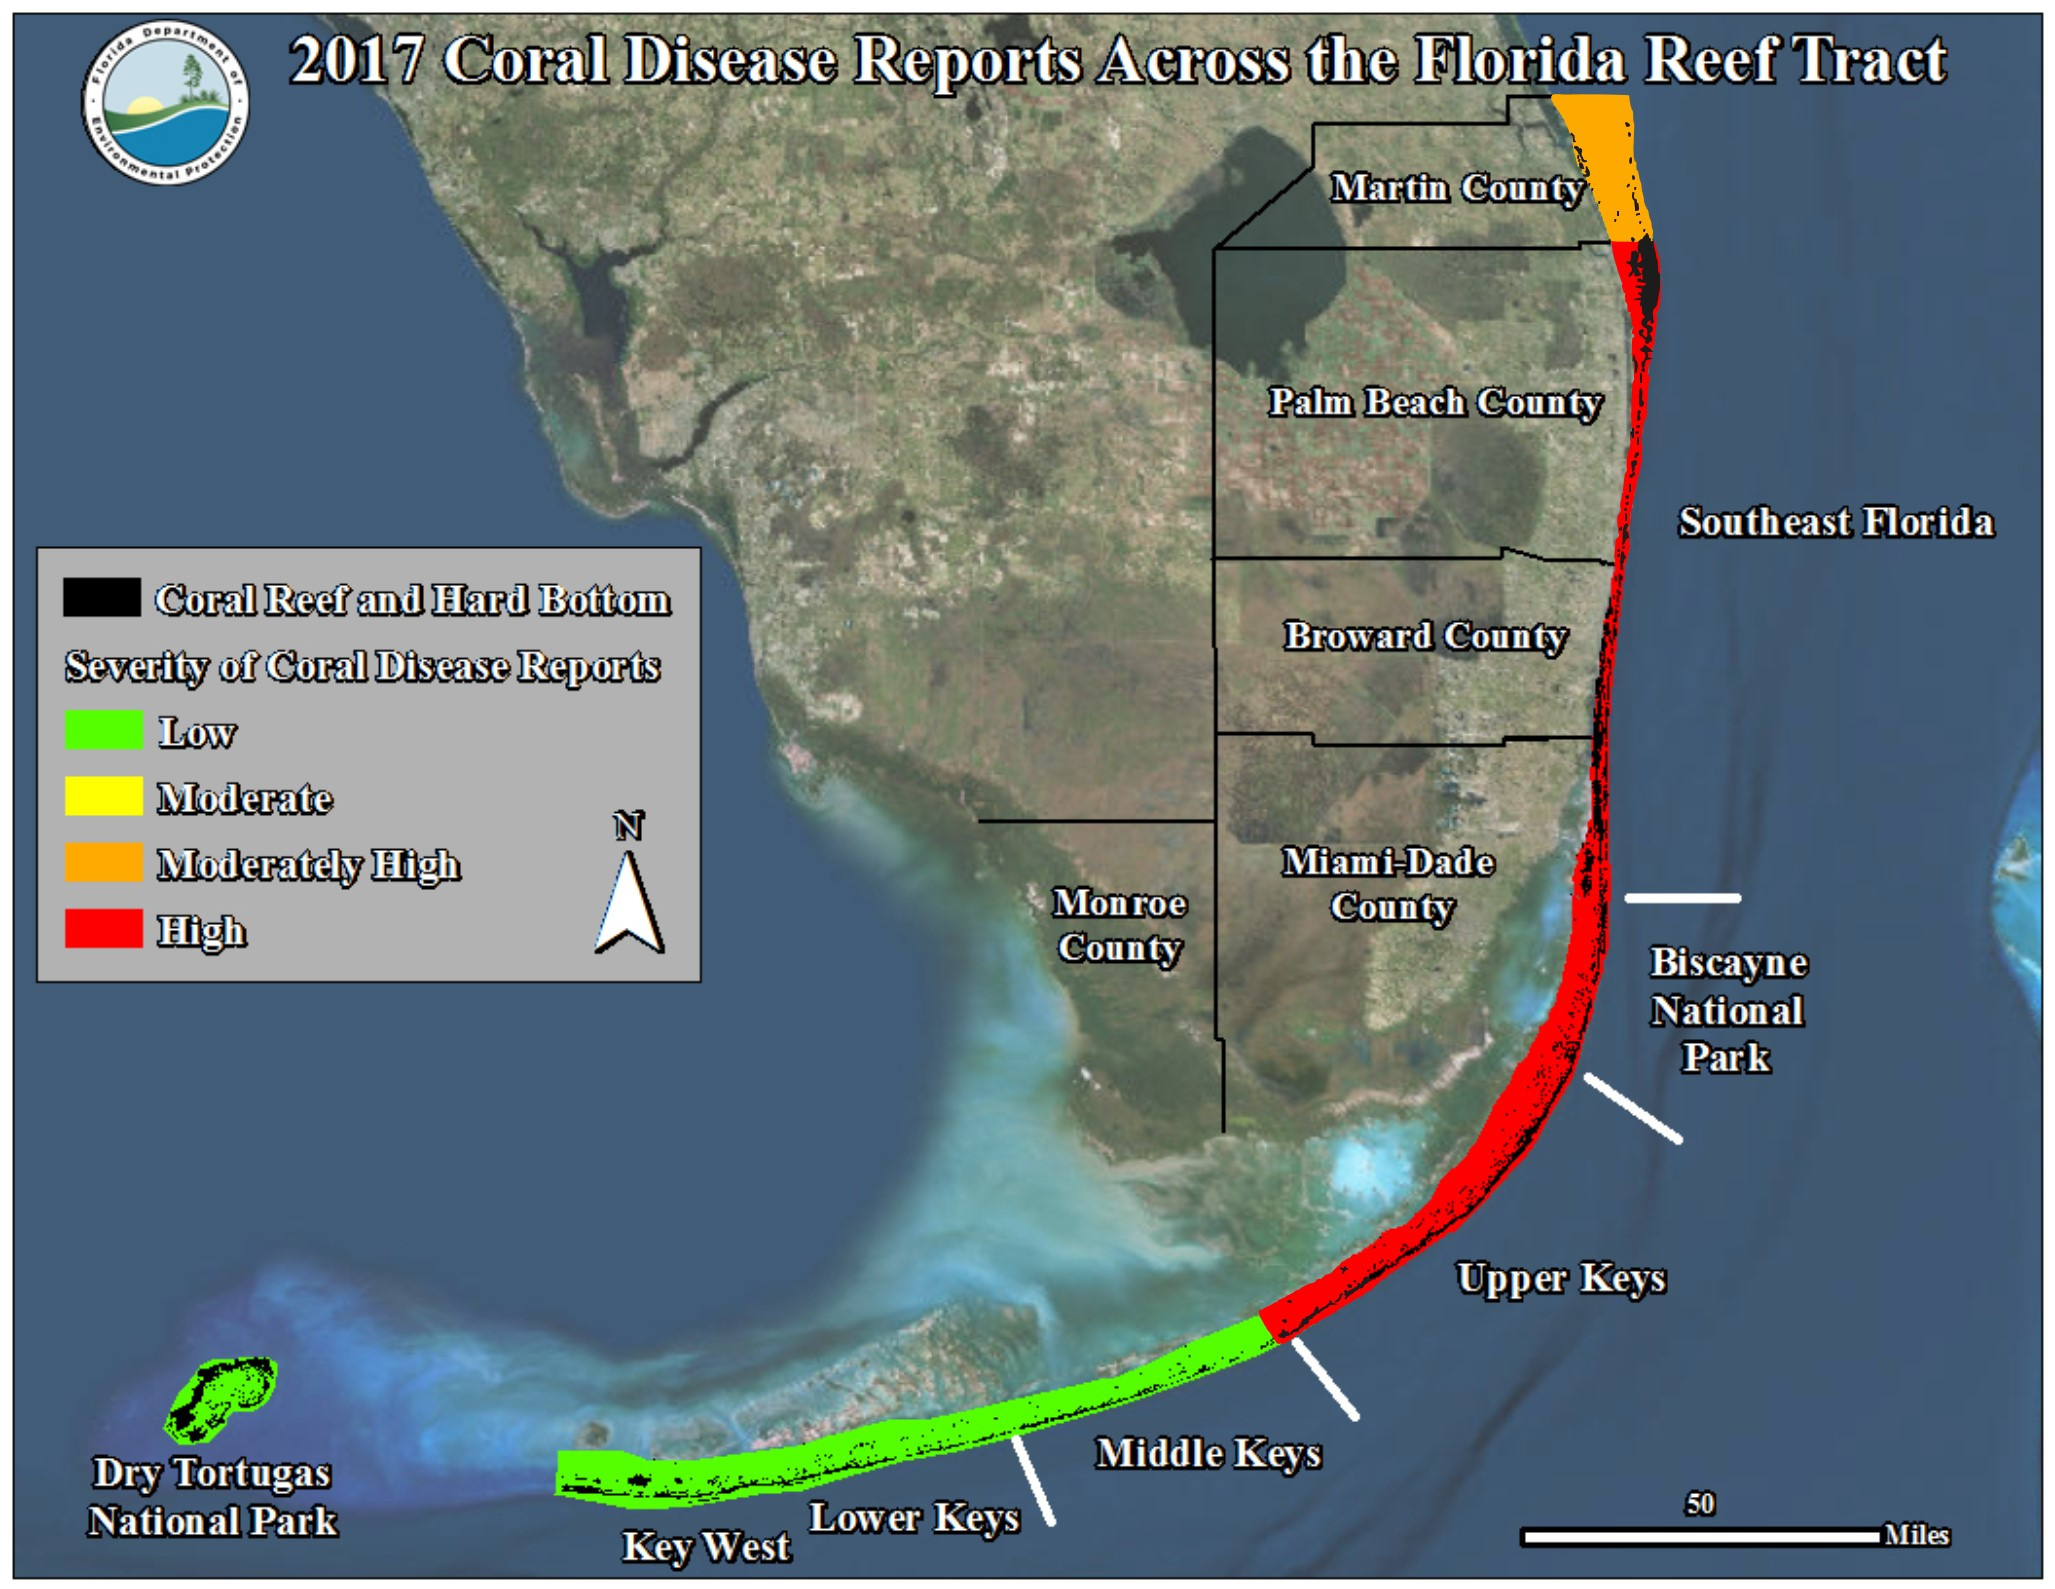 Florida Reef Map Fco Coral Reef Disease Map 2017 Updated V2 Kb 1 9 - Florida Reef Map